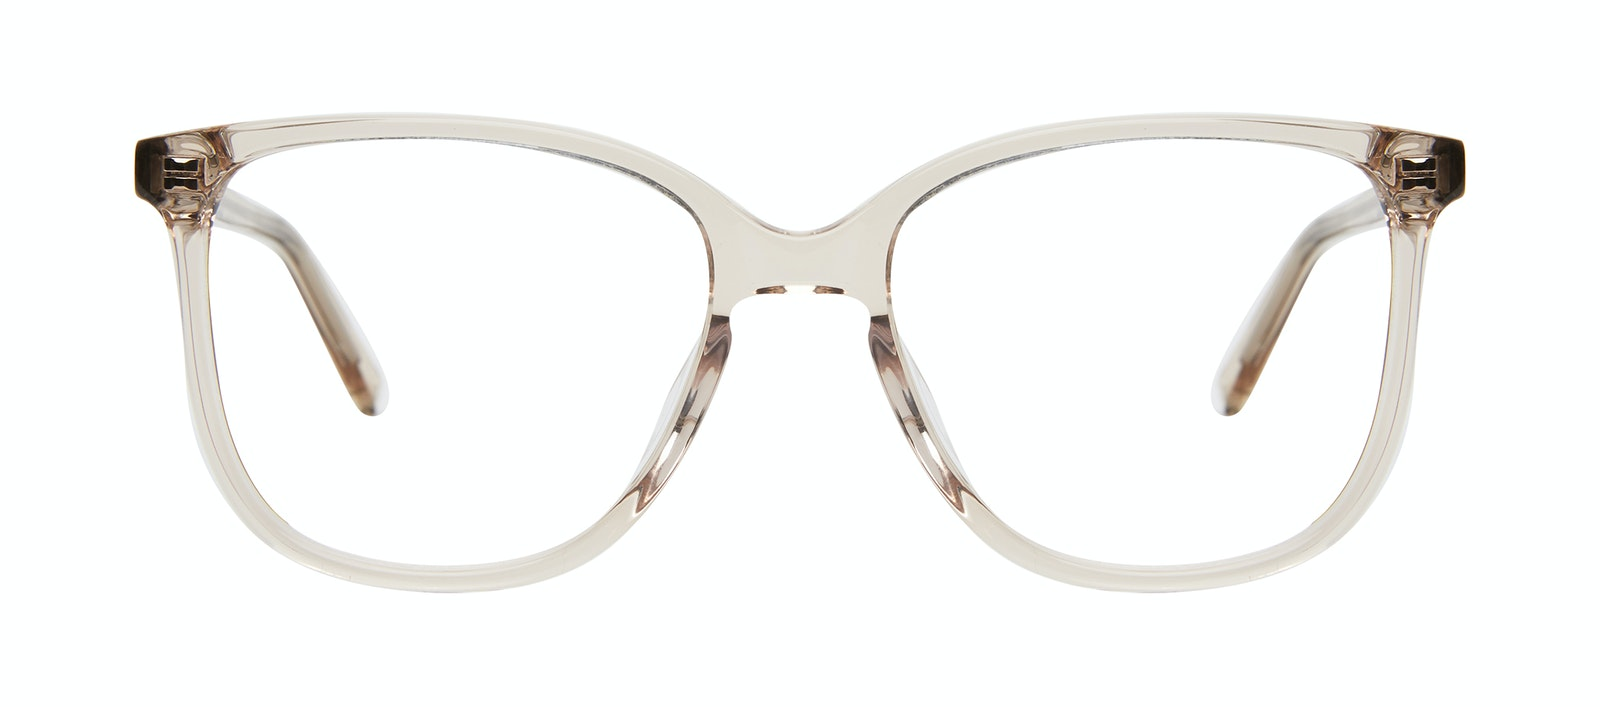 Affordable Fashion Glasses Square Eyeglasses Women Lead Blond Front